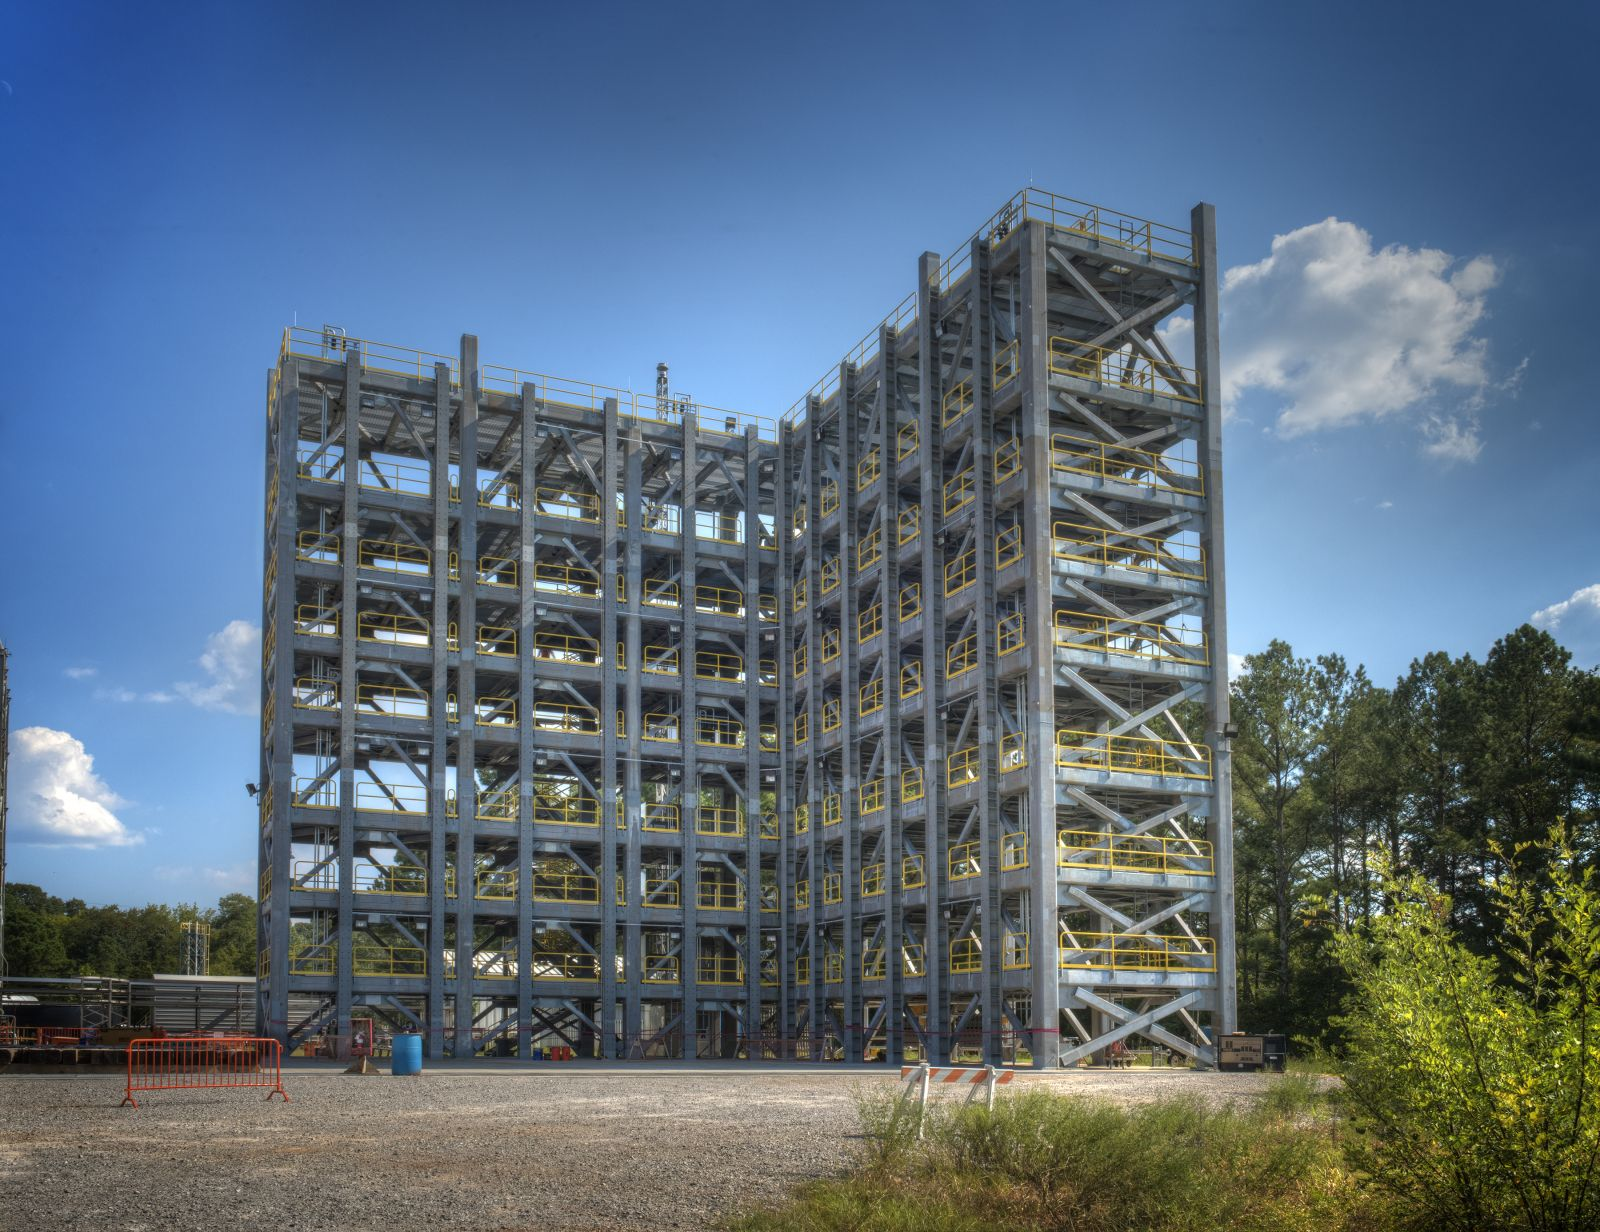 Video: Time lapse of SLS test stand construction - SpaceFlight Insider